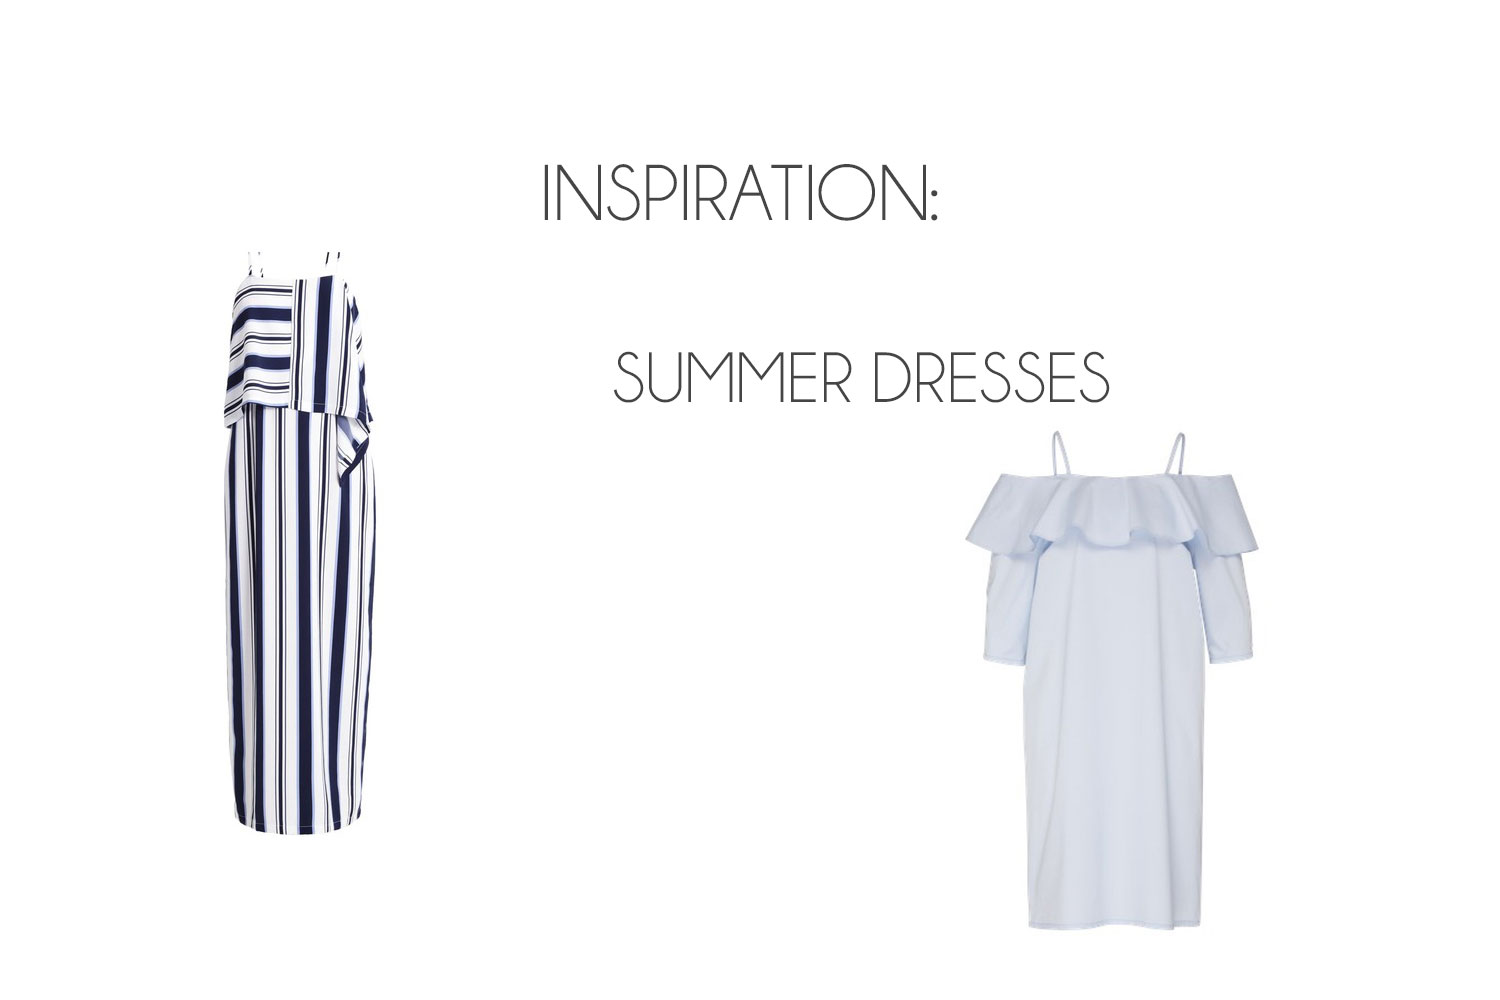 5 Things that Rocked my World in June - Summerdresses